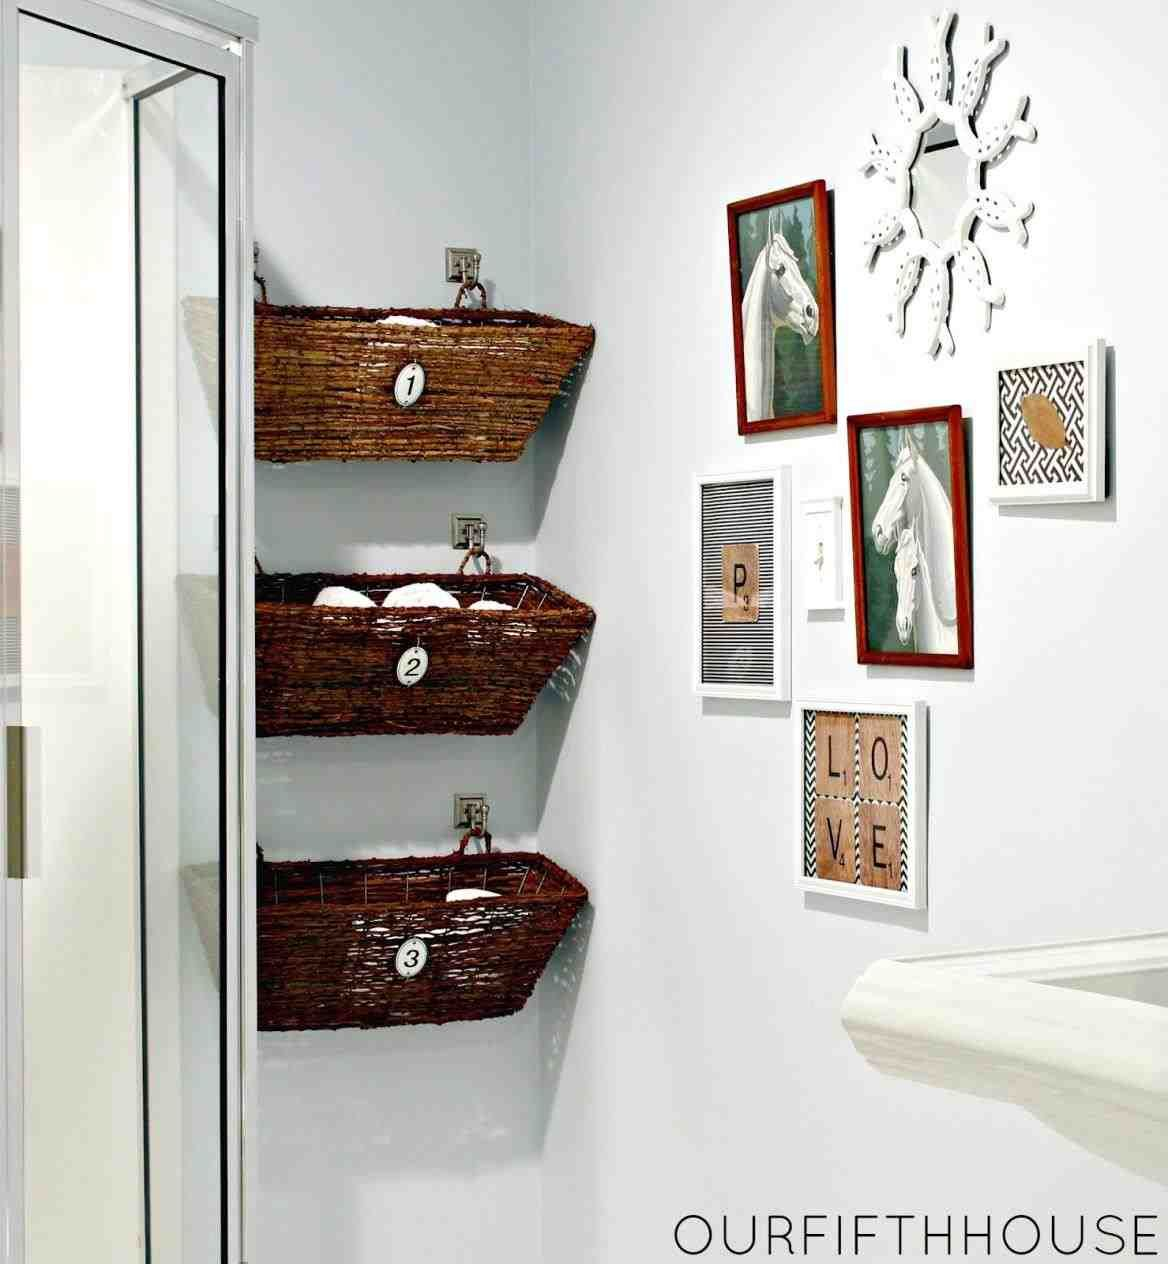 This Bathroom Wall Storage Baskets Ergonomic Wall Mounted pertaining to size 1168 X 1264